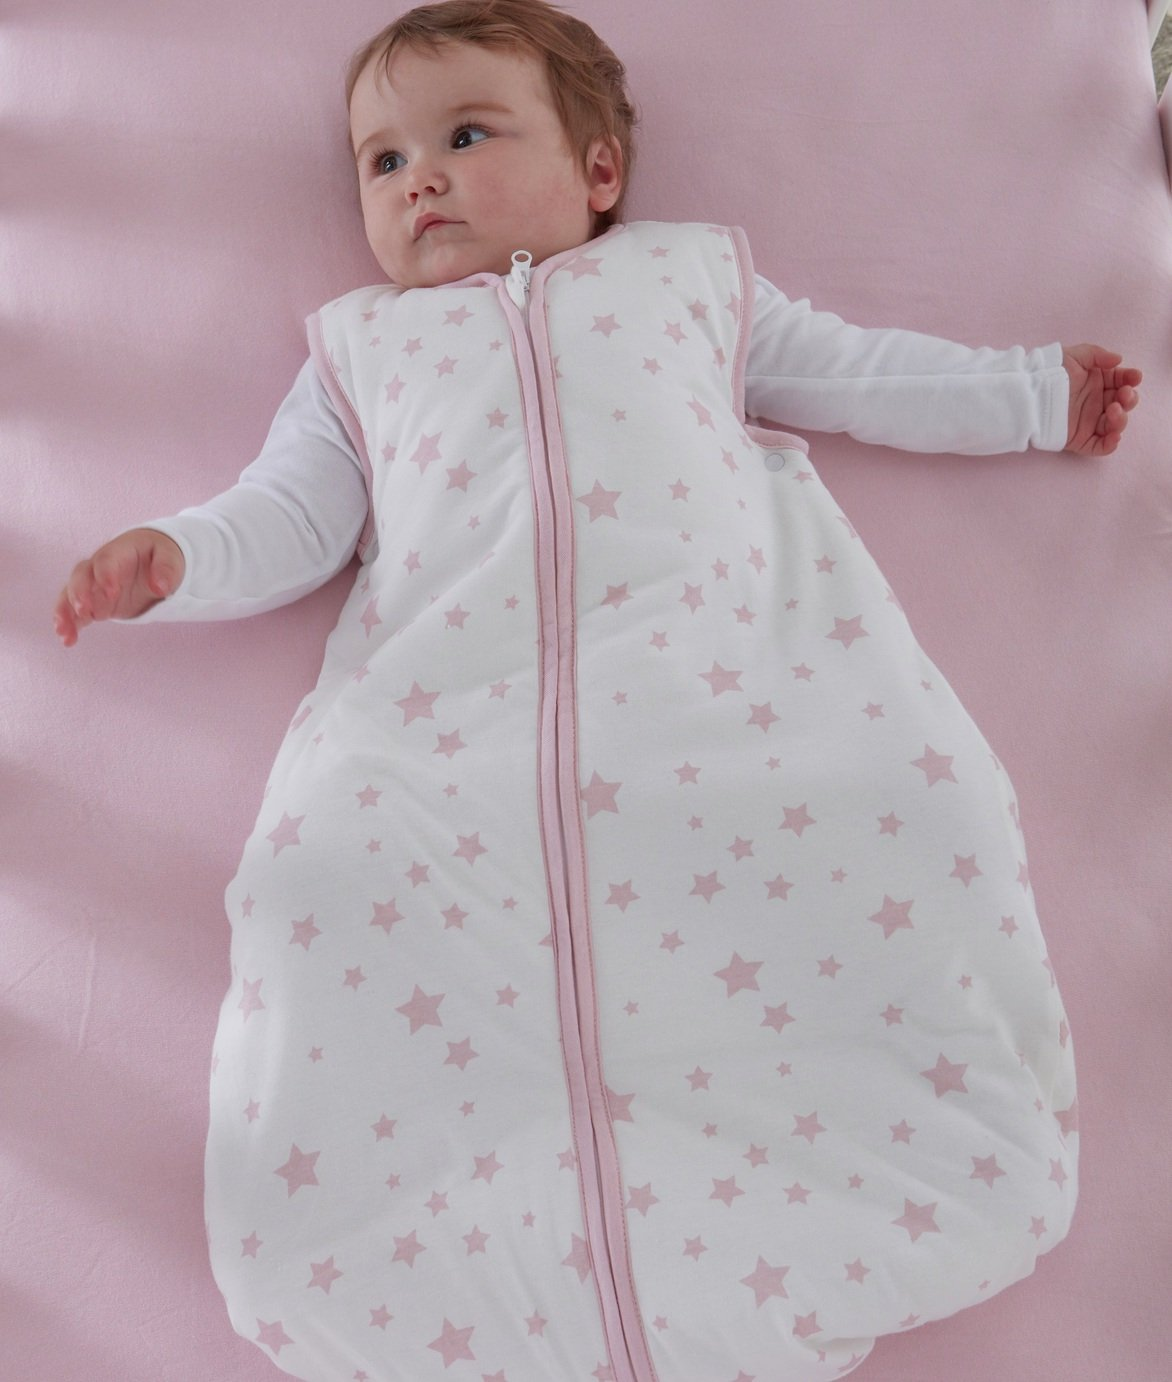 Silentnight Baby Sleeping Bag - Pink Stars